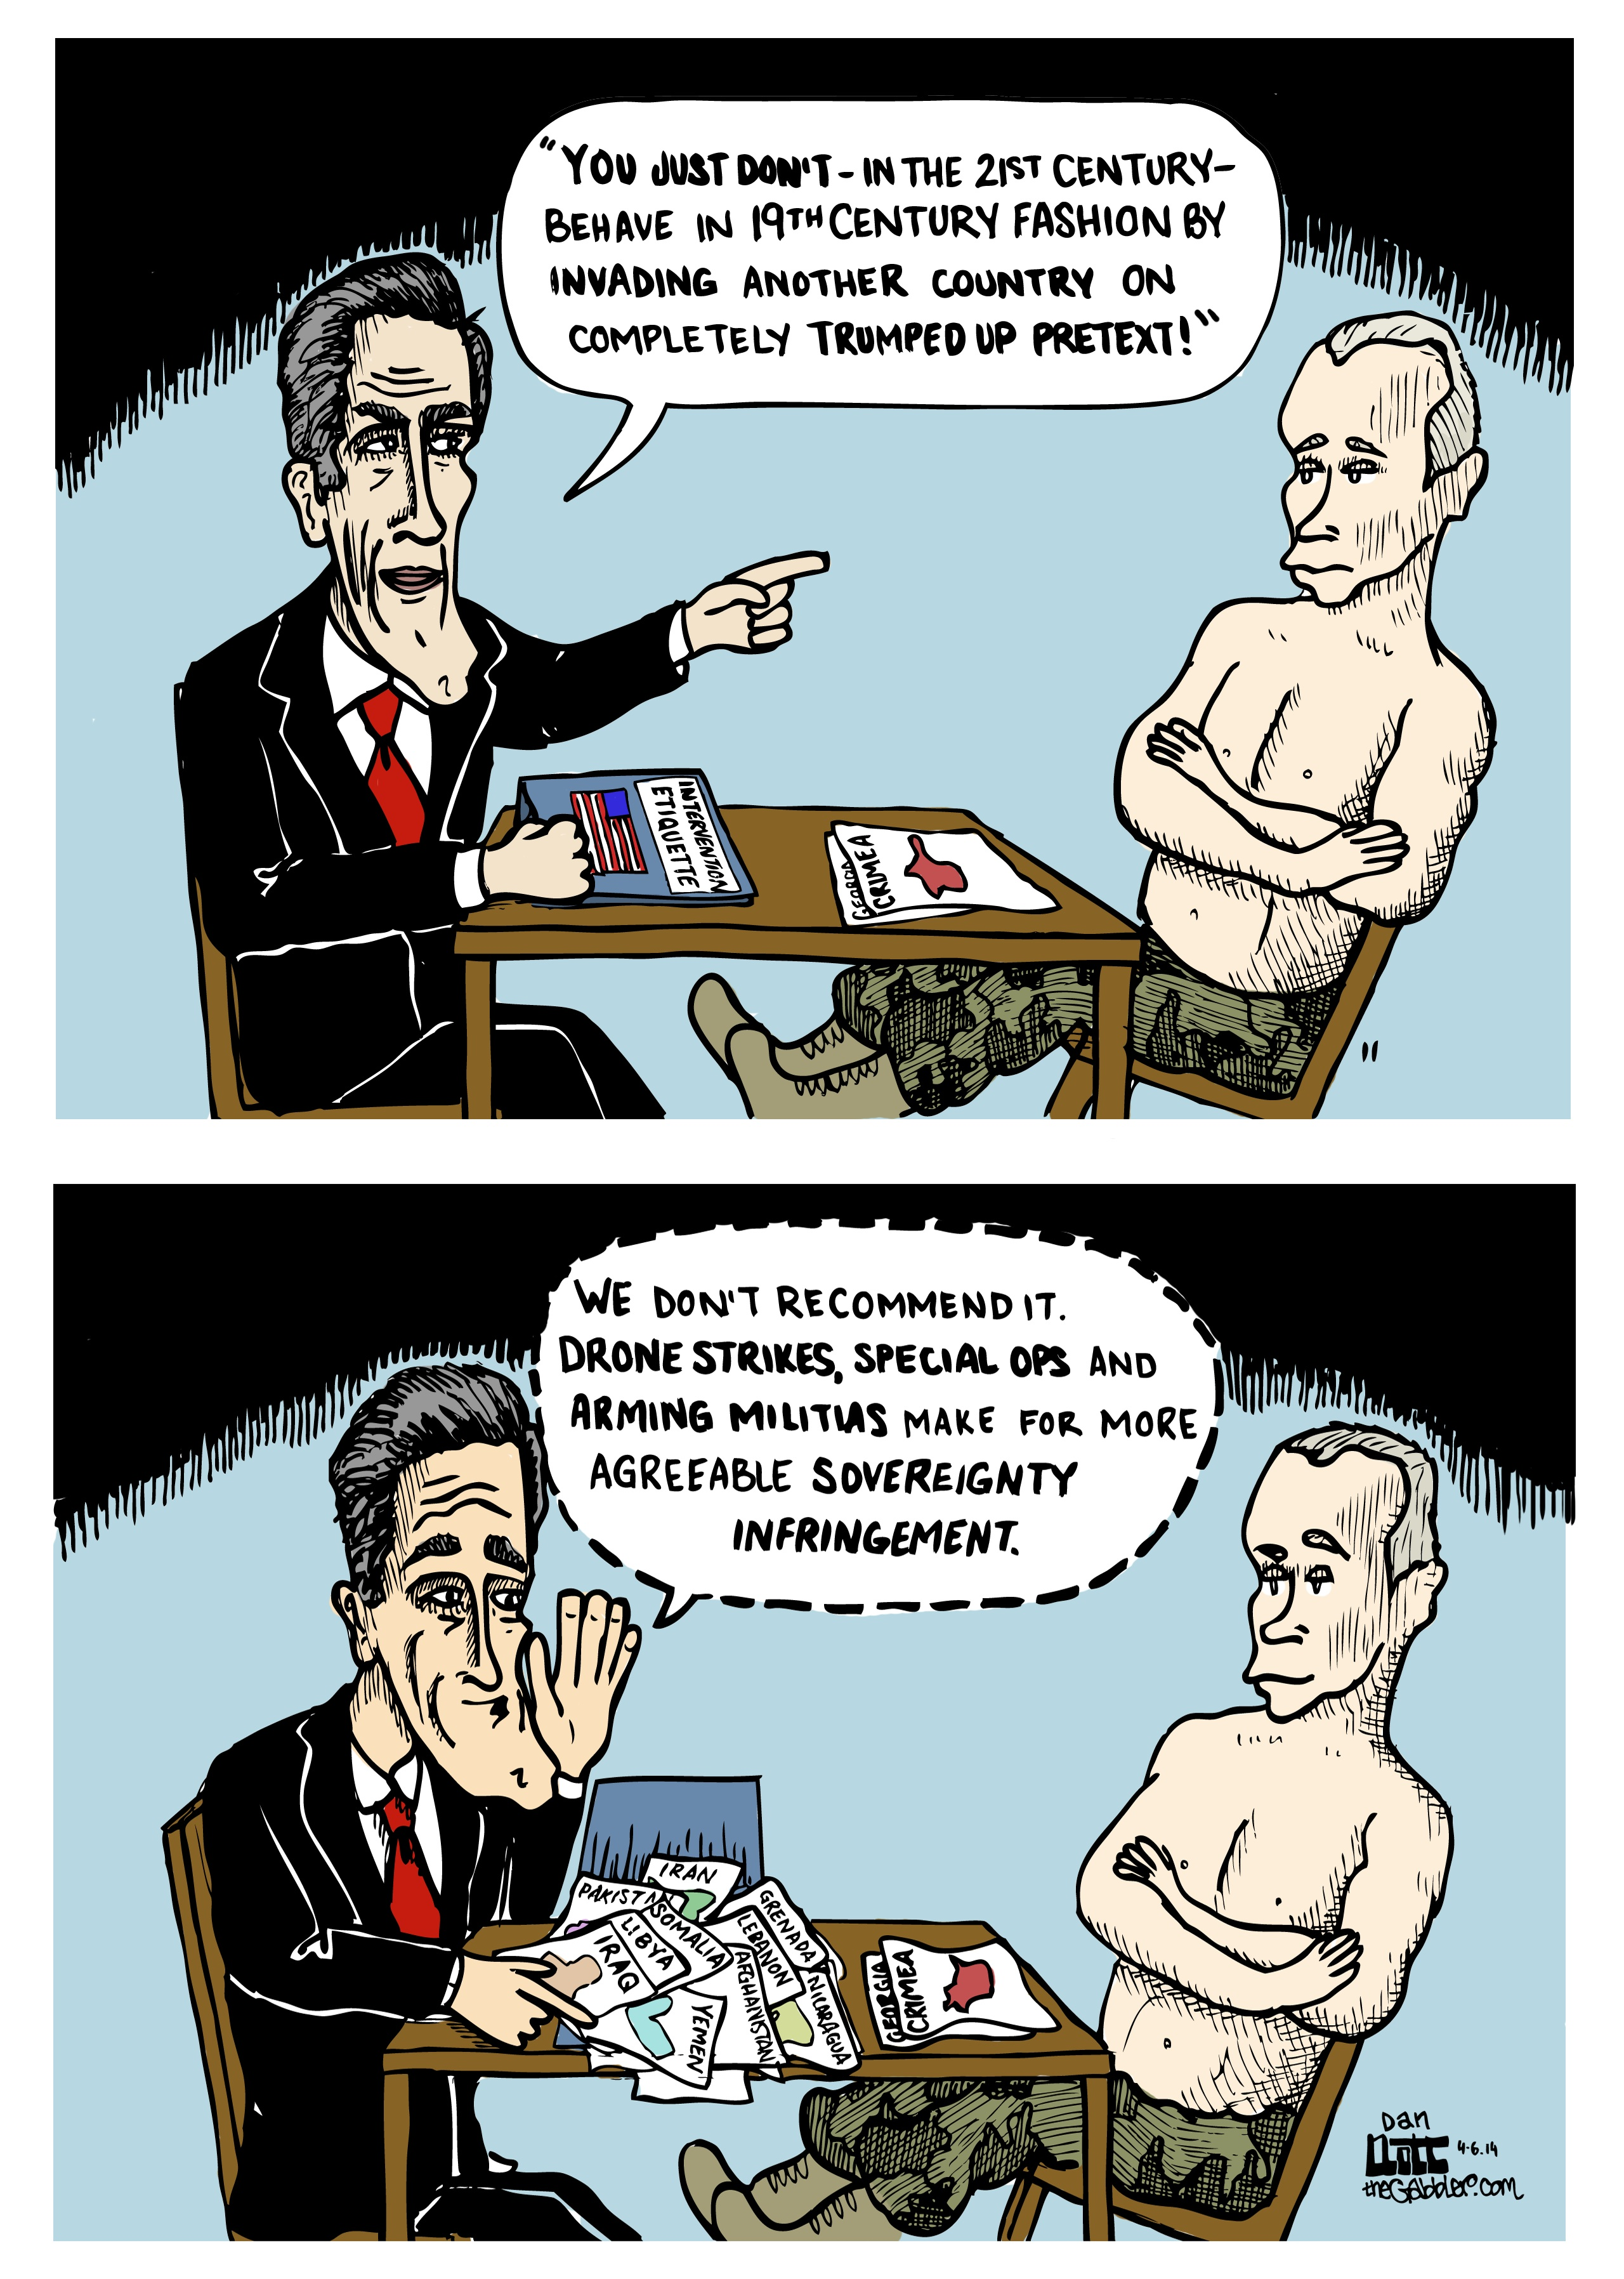 Kerry Putin Ukraine Cartoon